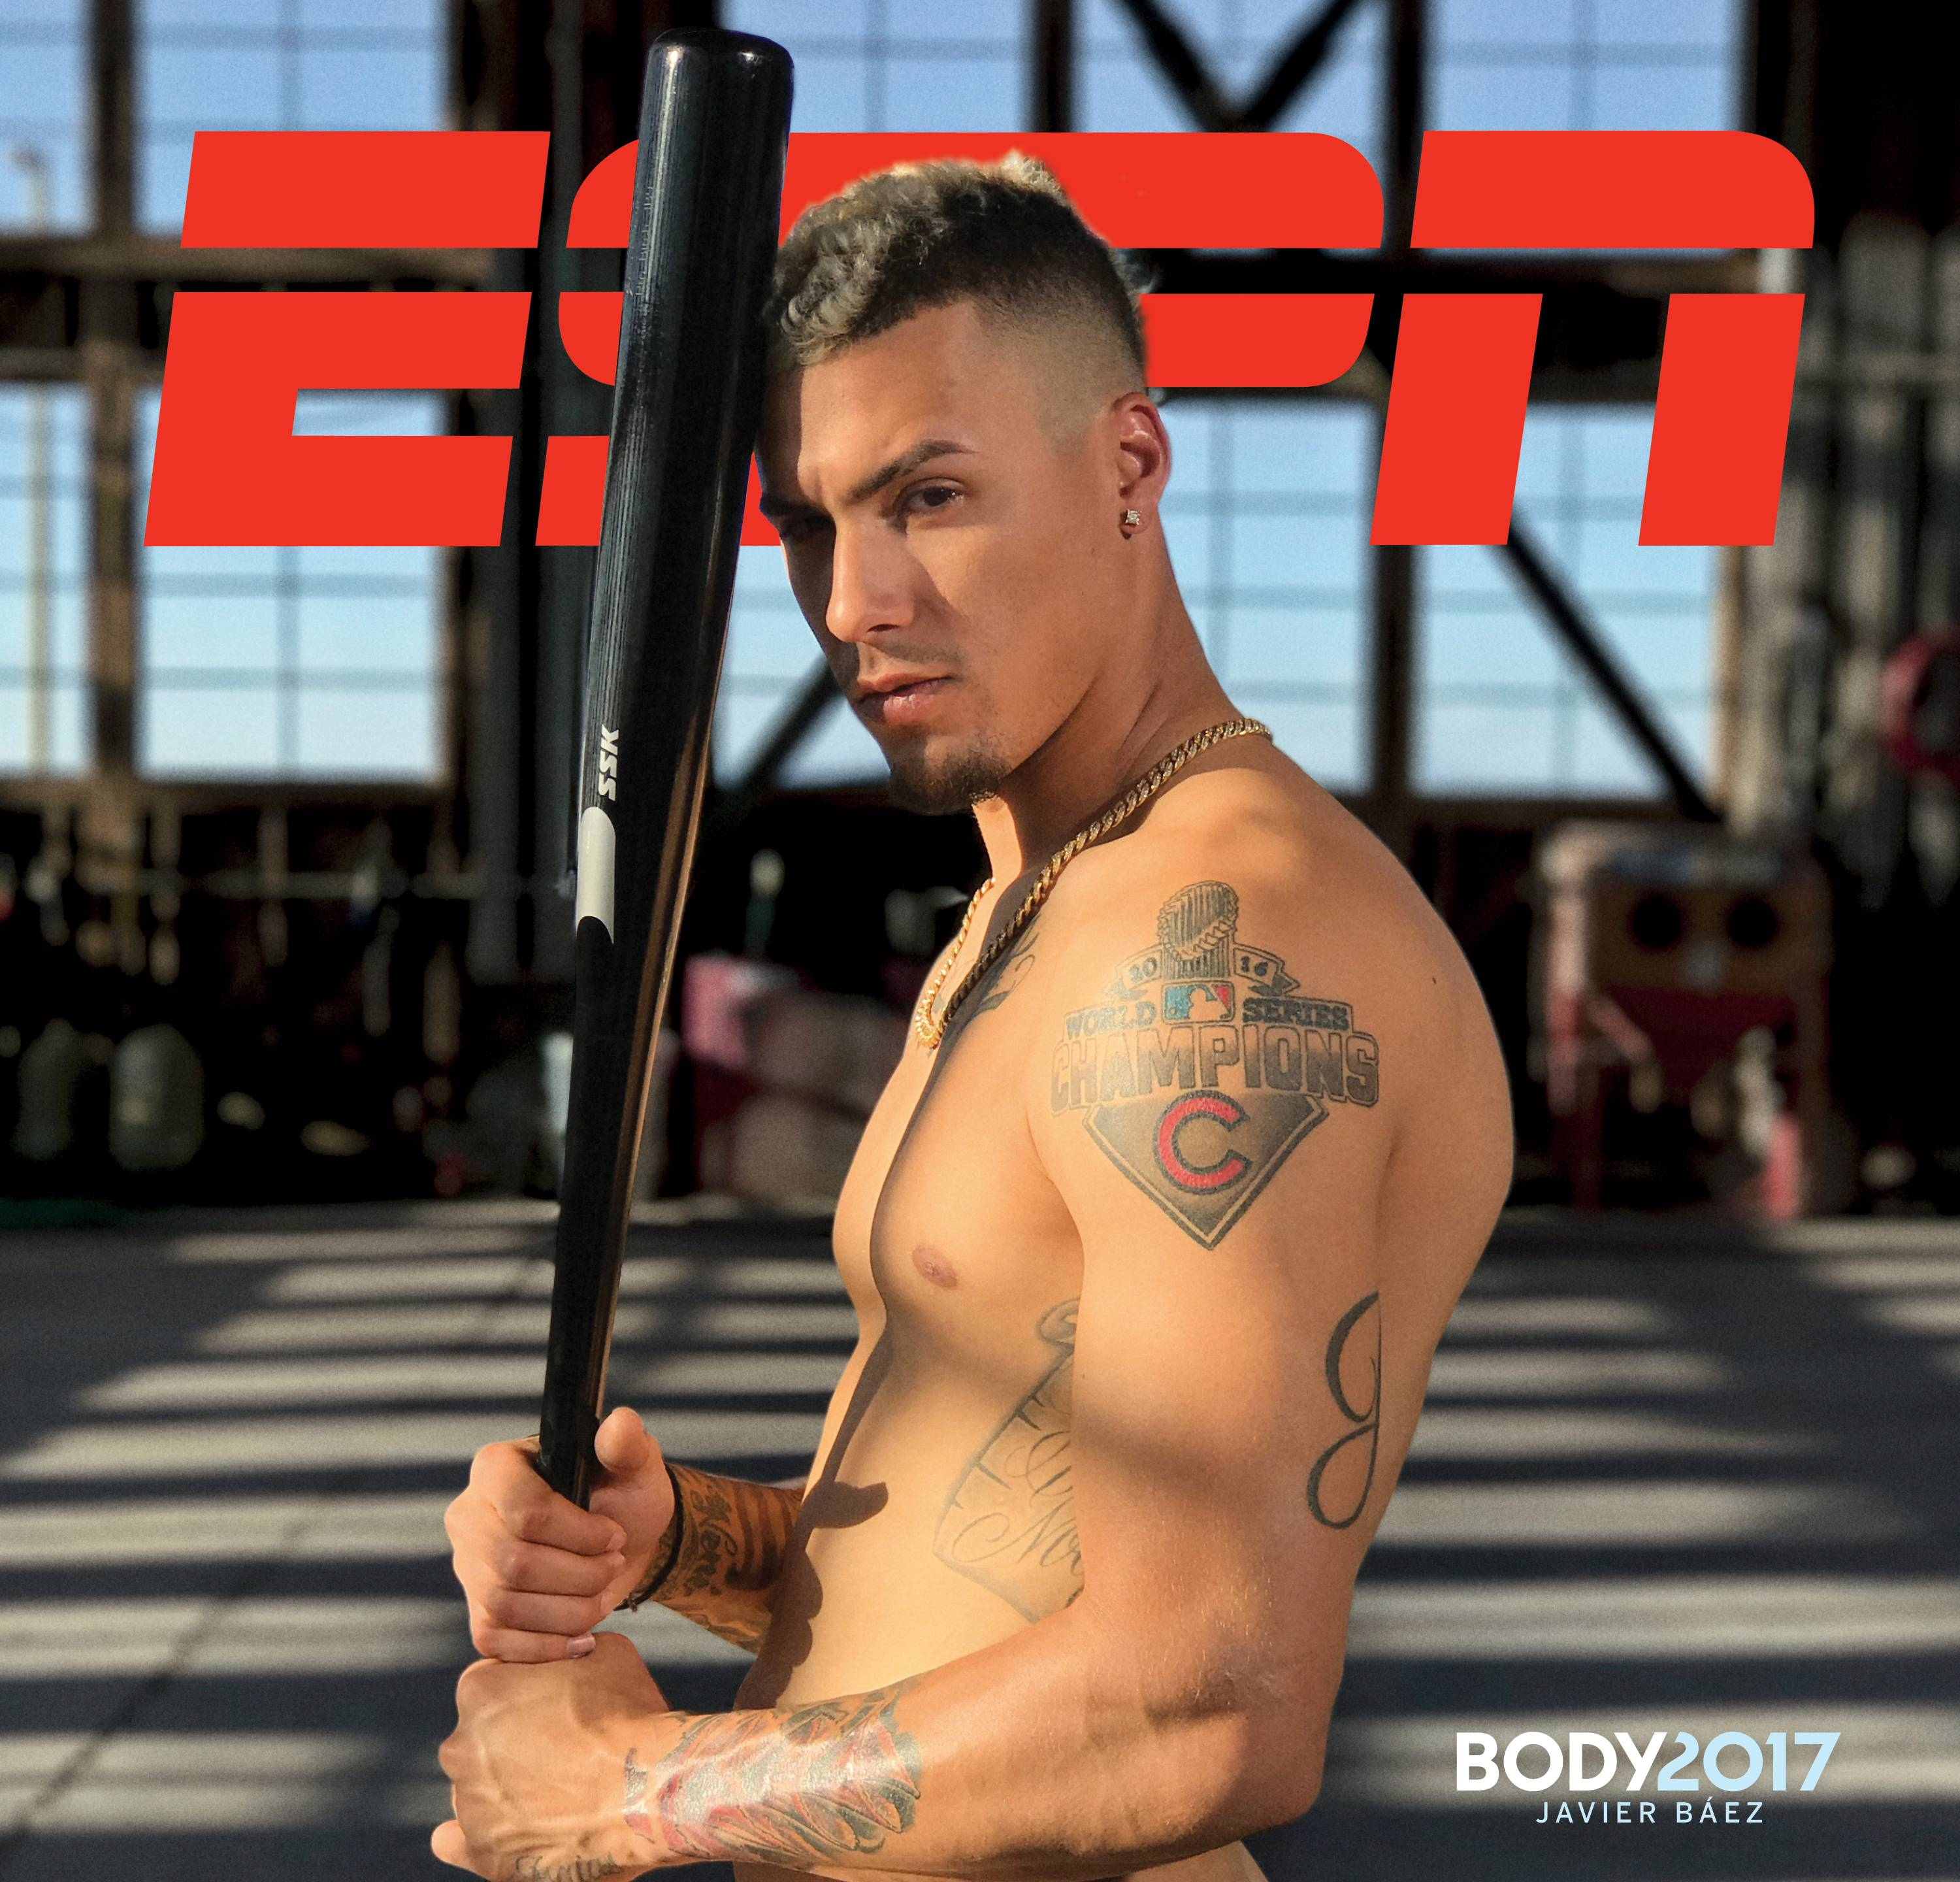 Constable: Javy Baez bares it all on ESPN magazine cover